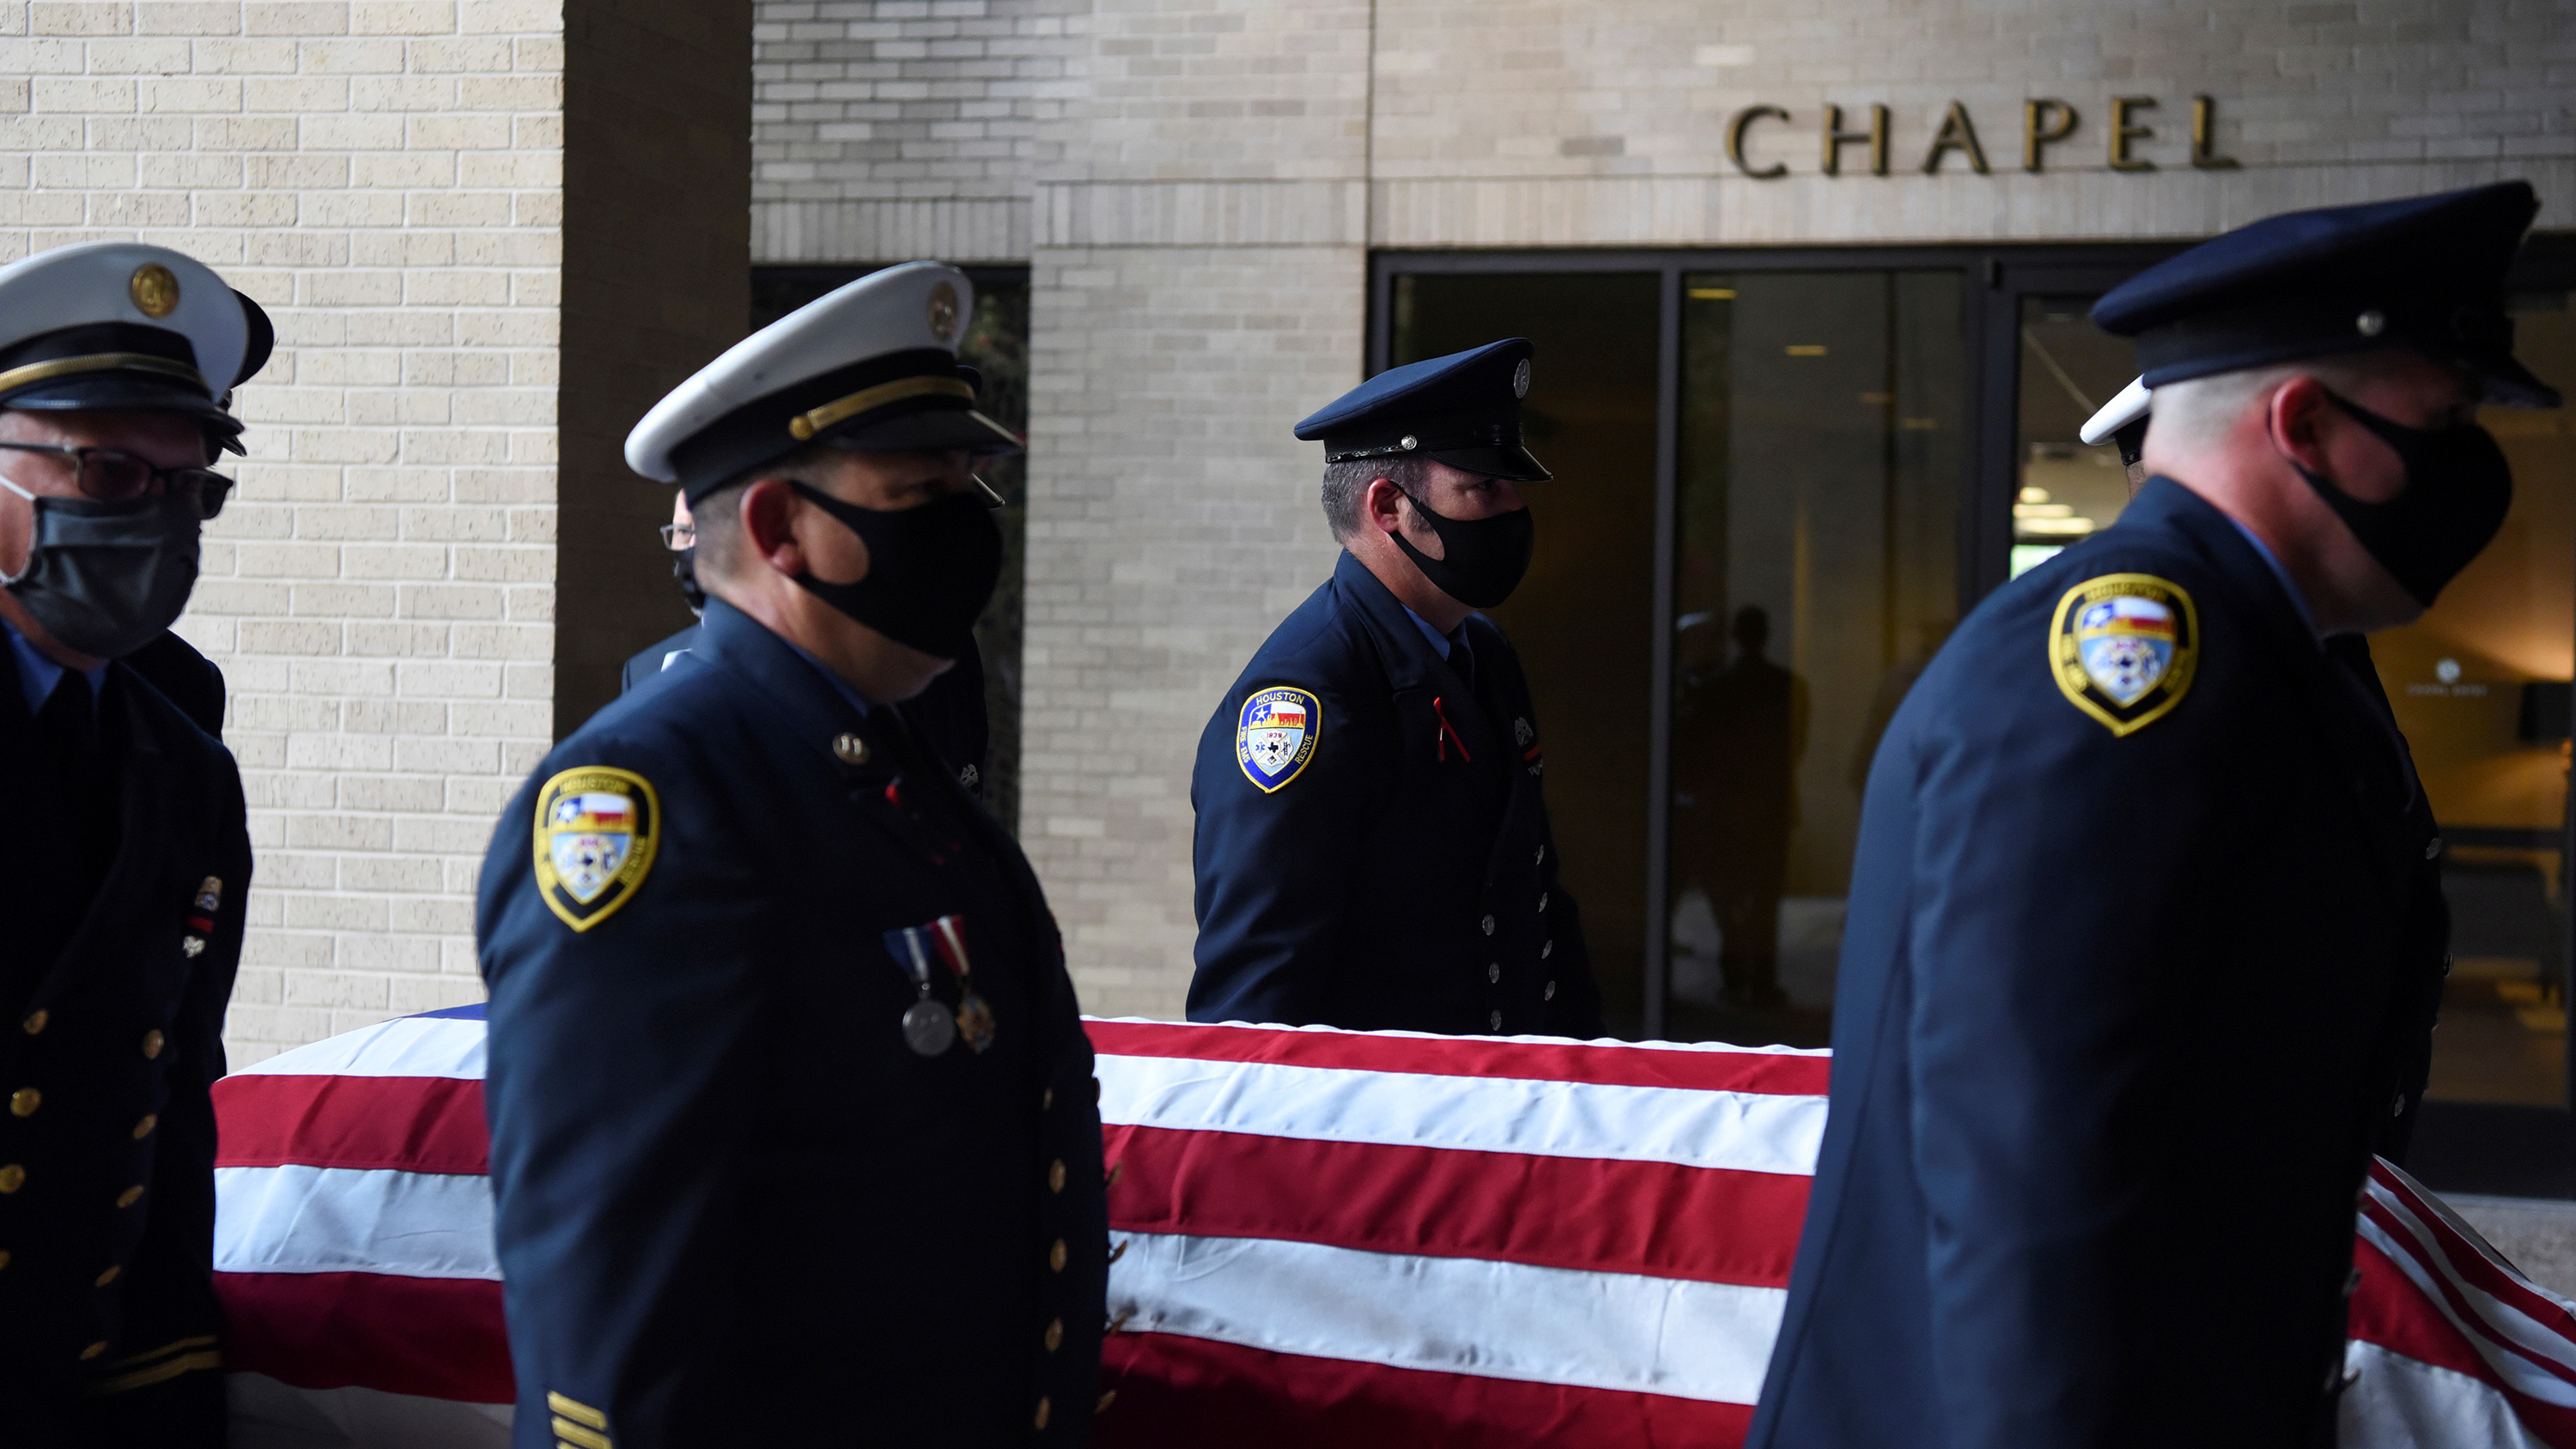 The photo shows a firefighter honor guard carrying a casket.